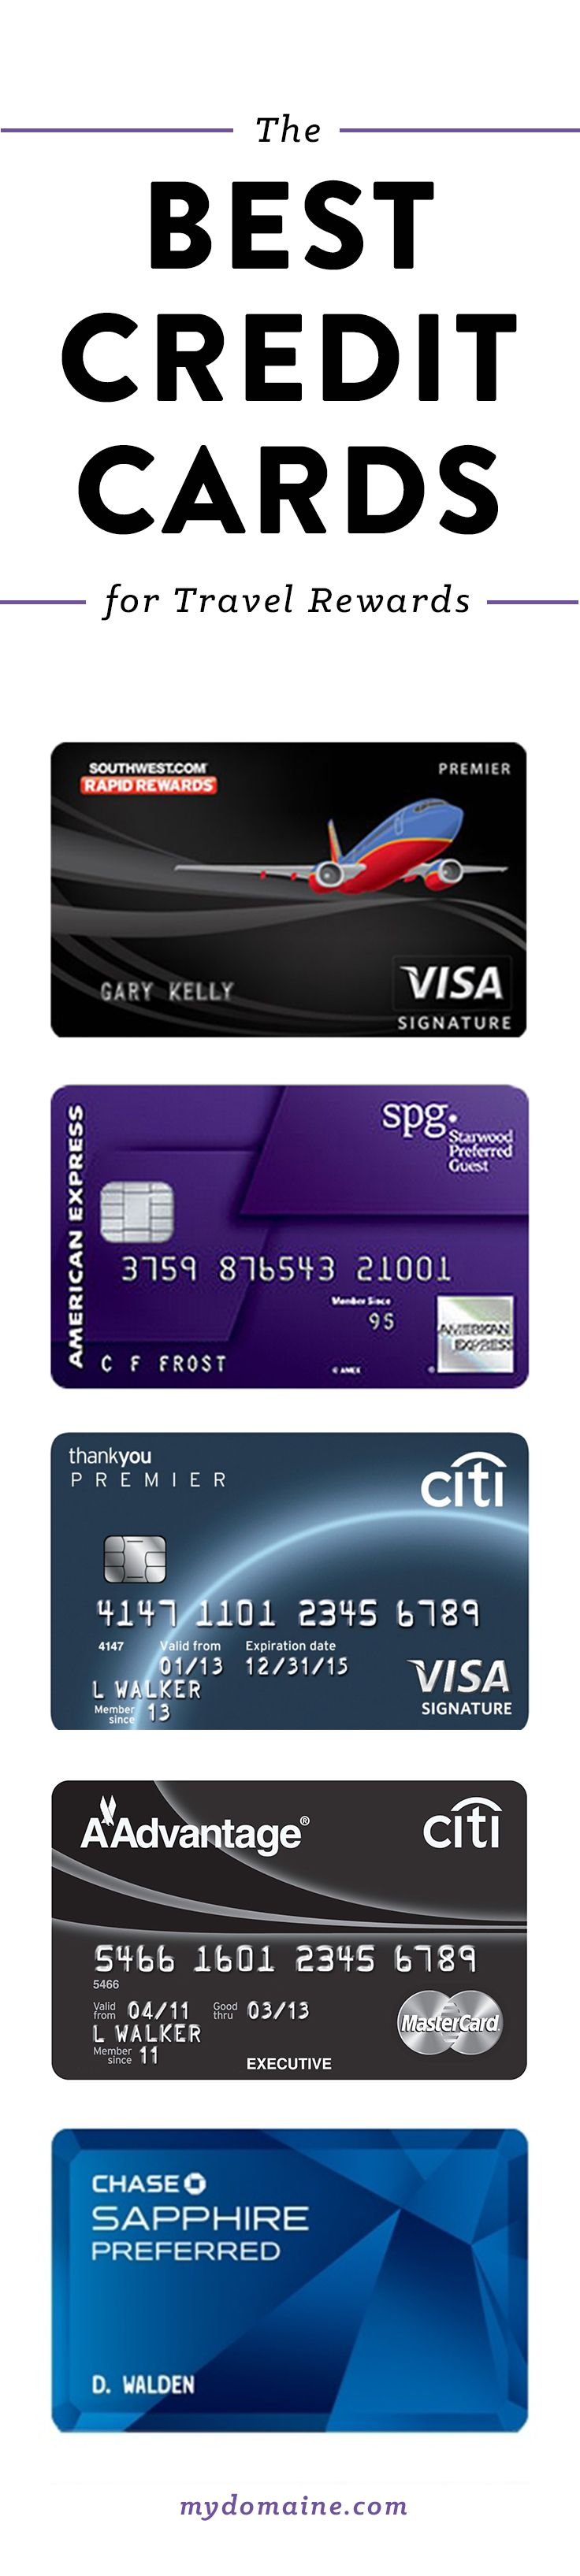 credit card rewards offers